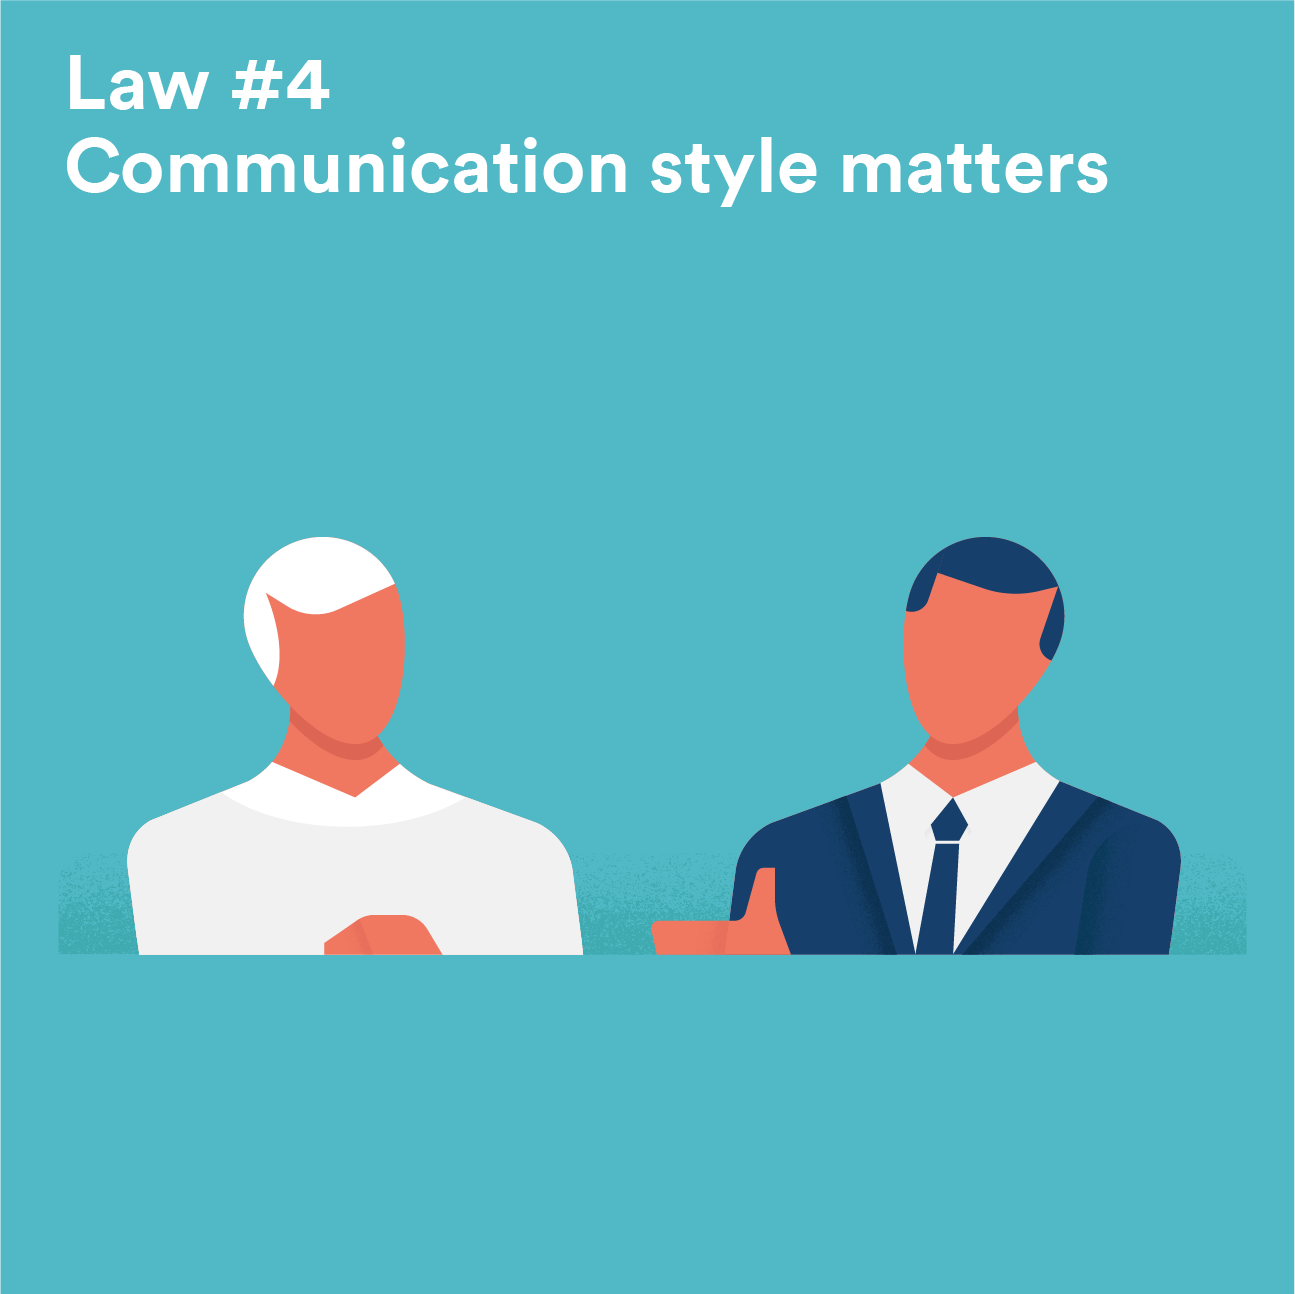 Law #4 - Communication style matters